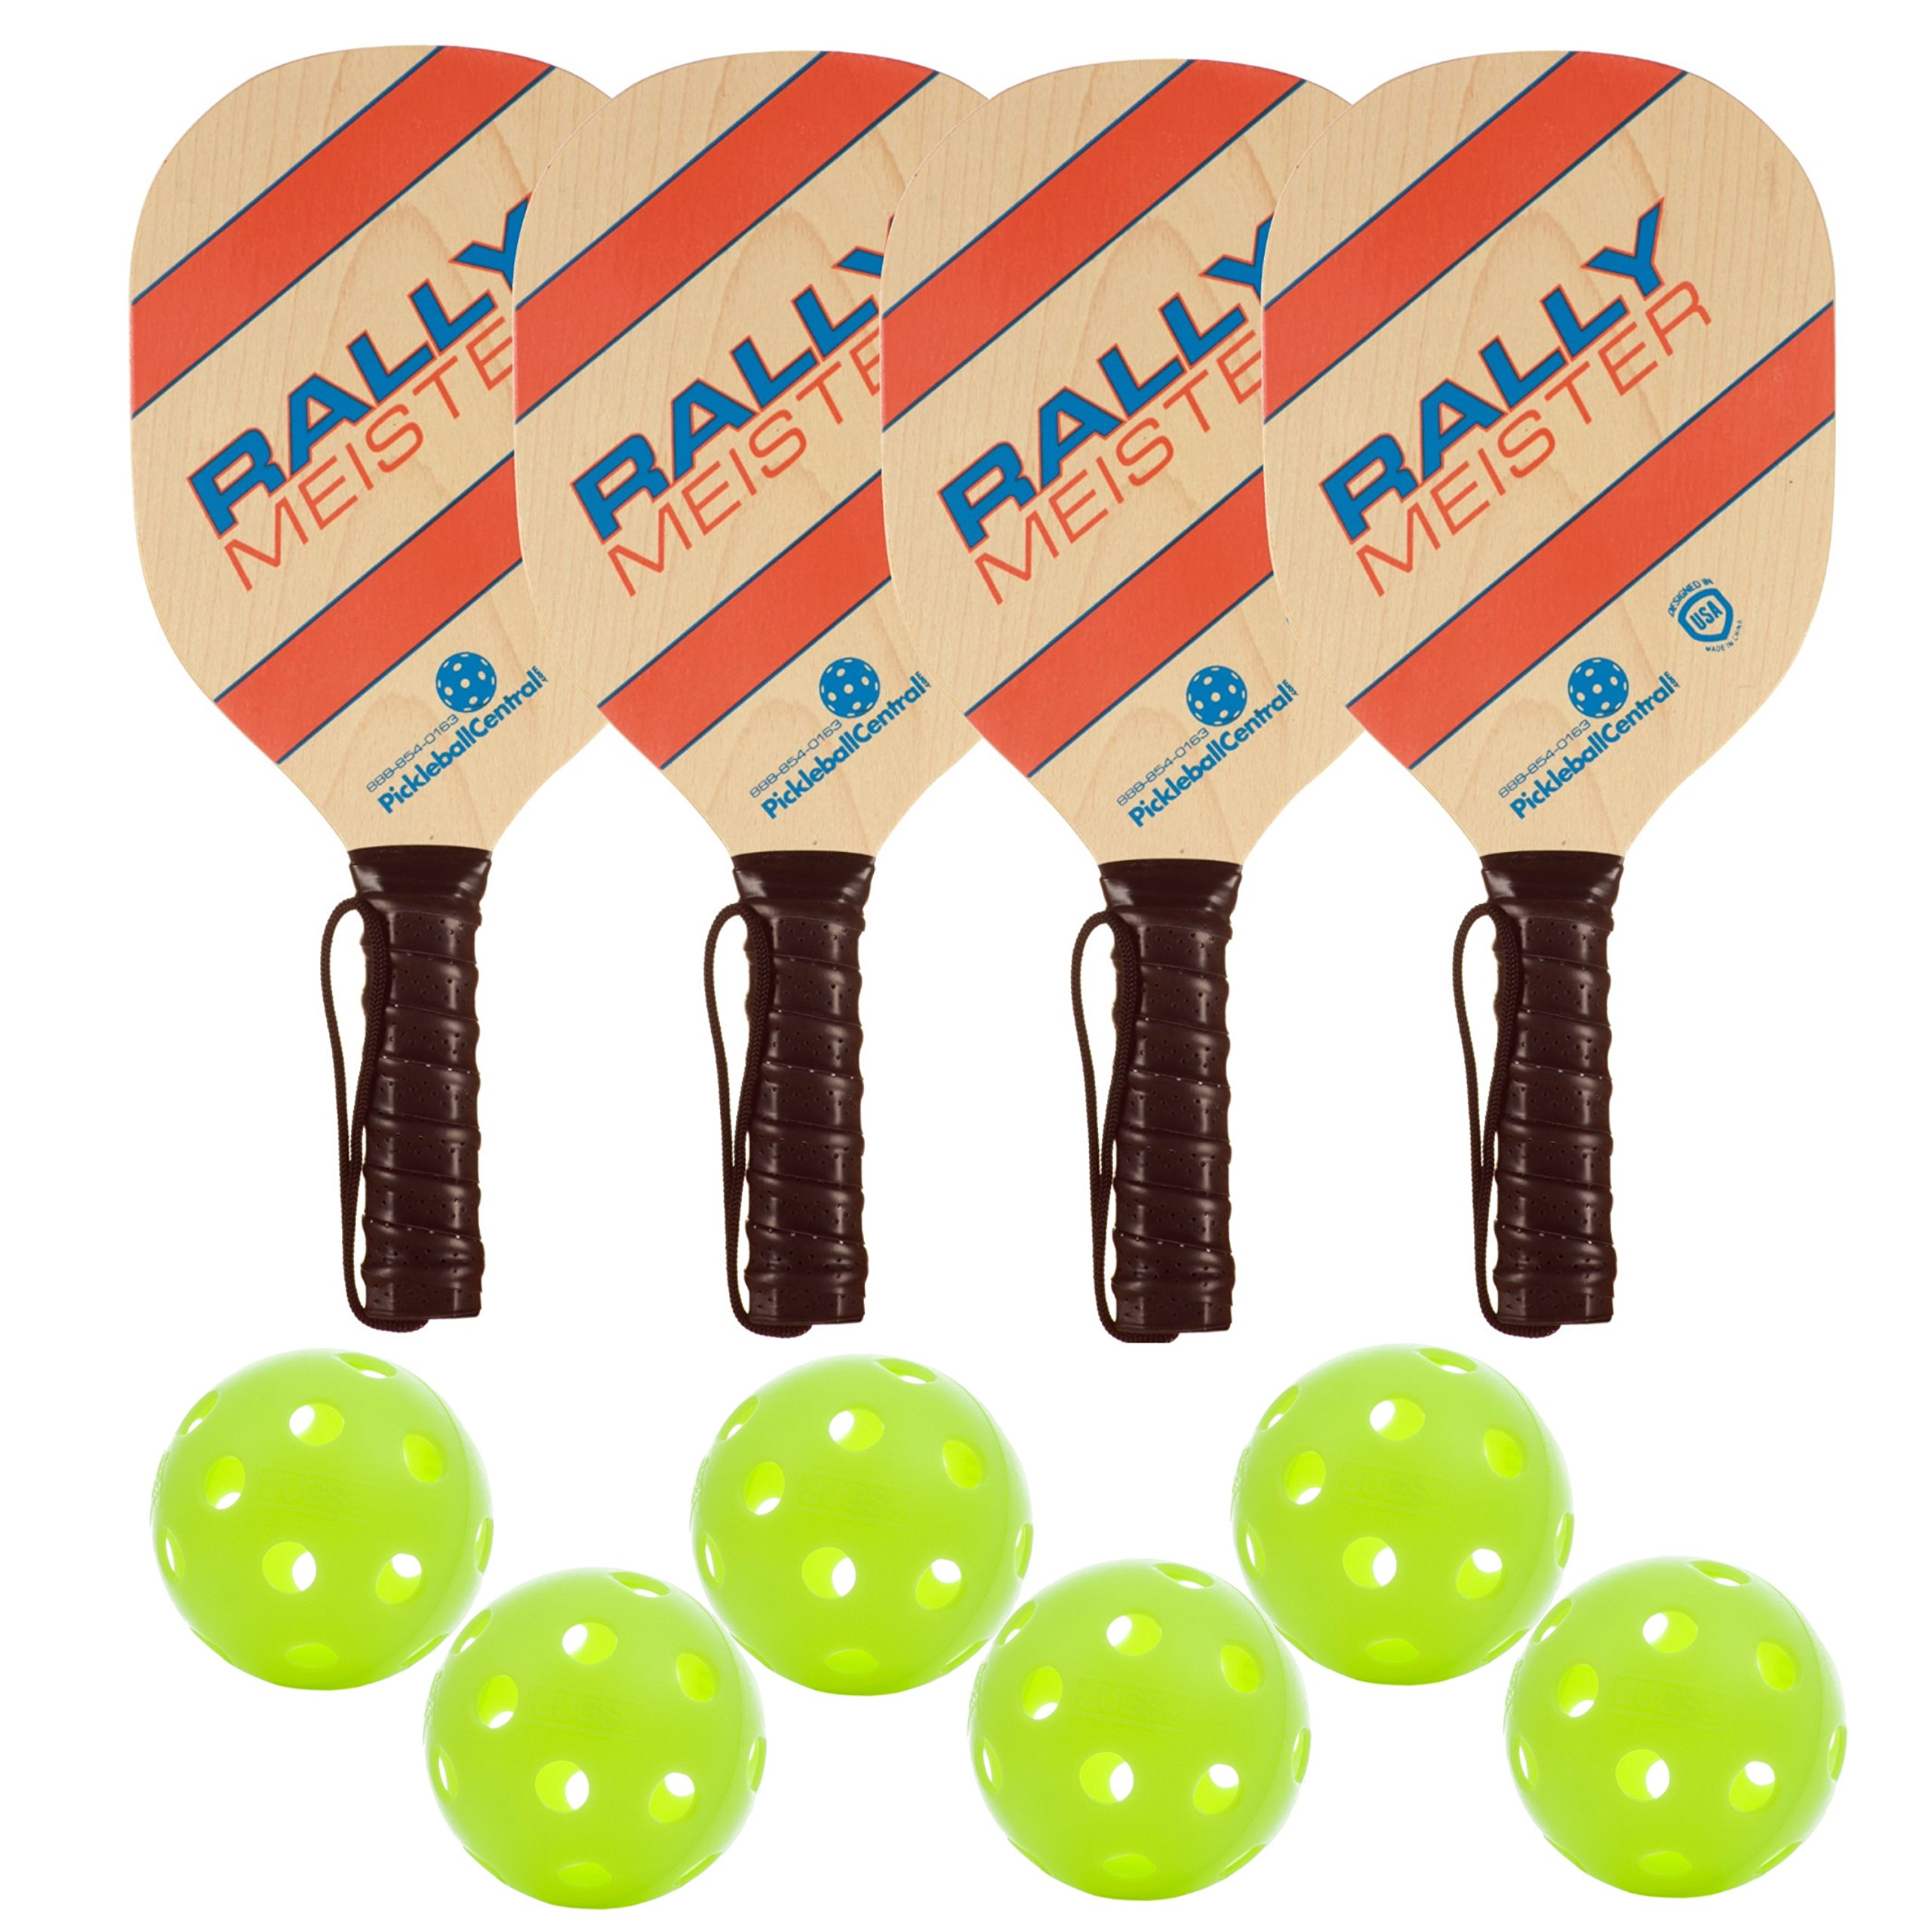 Rally Meister Wood Pickleball Paddle Deluxe Bundle 4 Paddles & 6 Balls by PickleballCentral